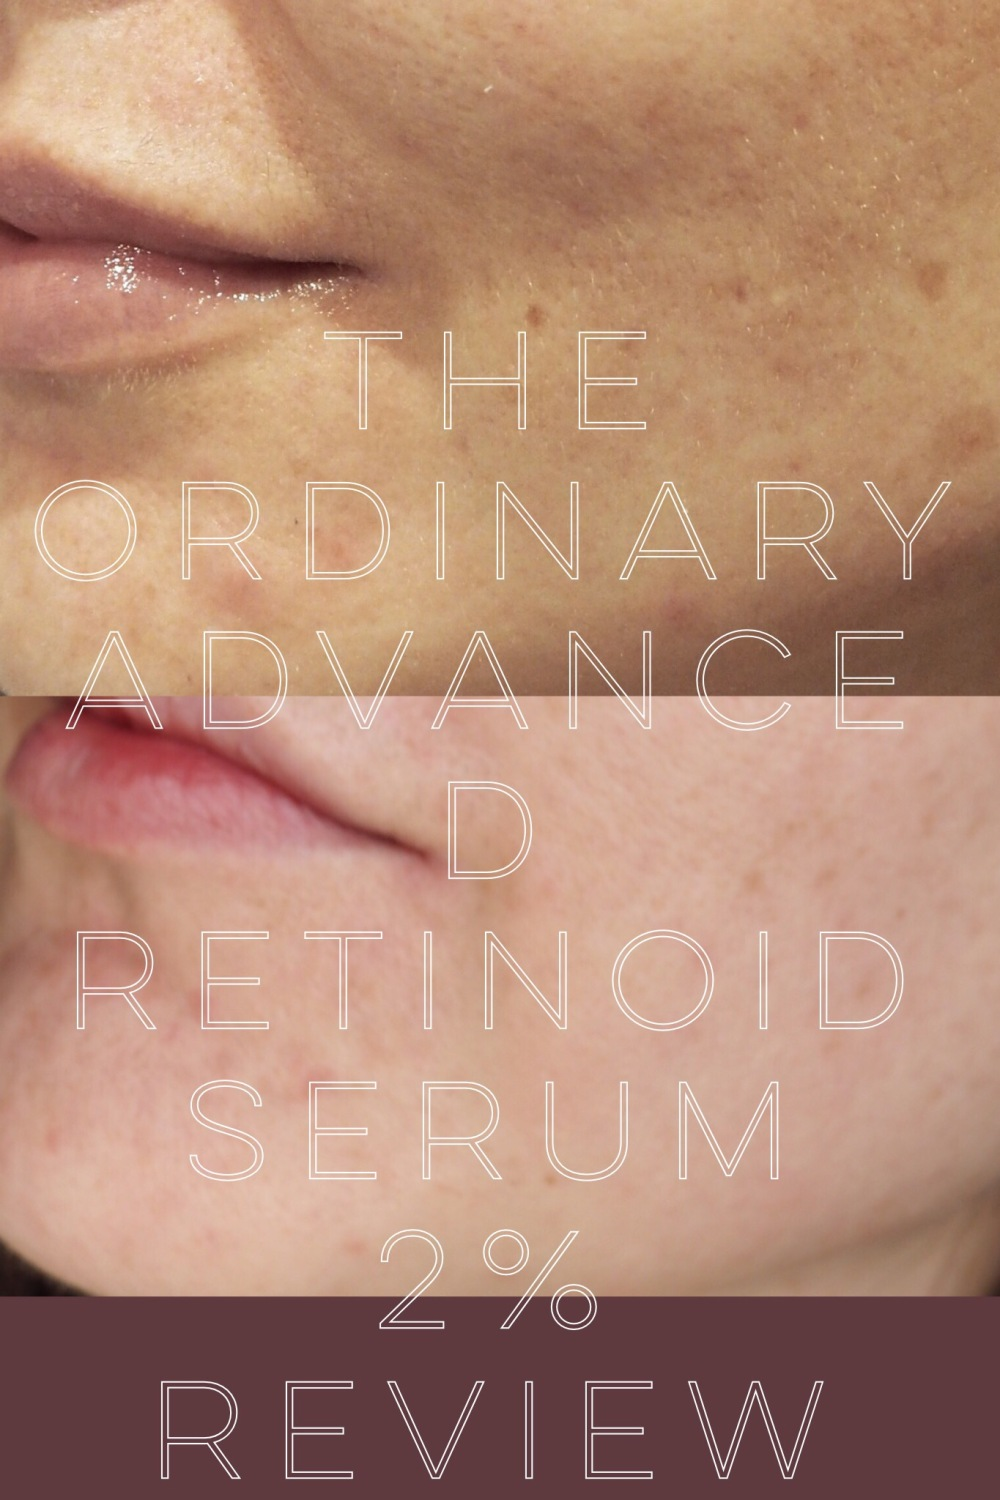 The Ordinary Advanced Retinoid Serum 2%- pinnable before and after picture